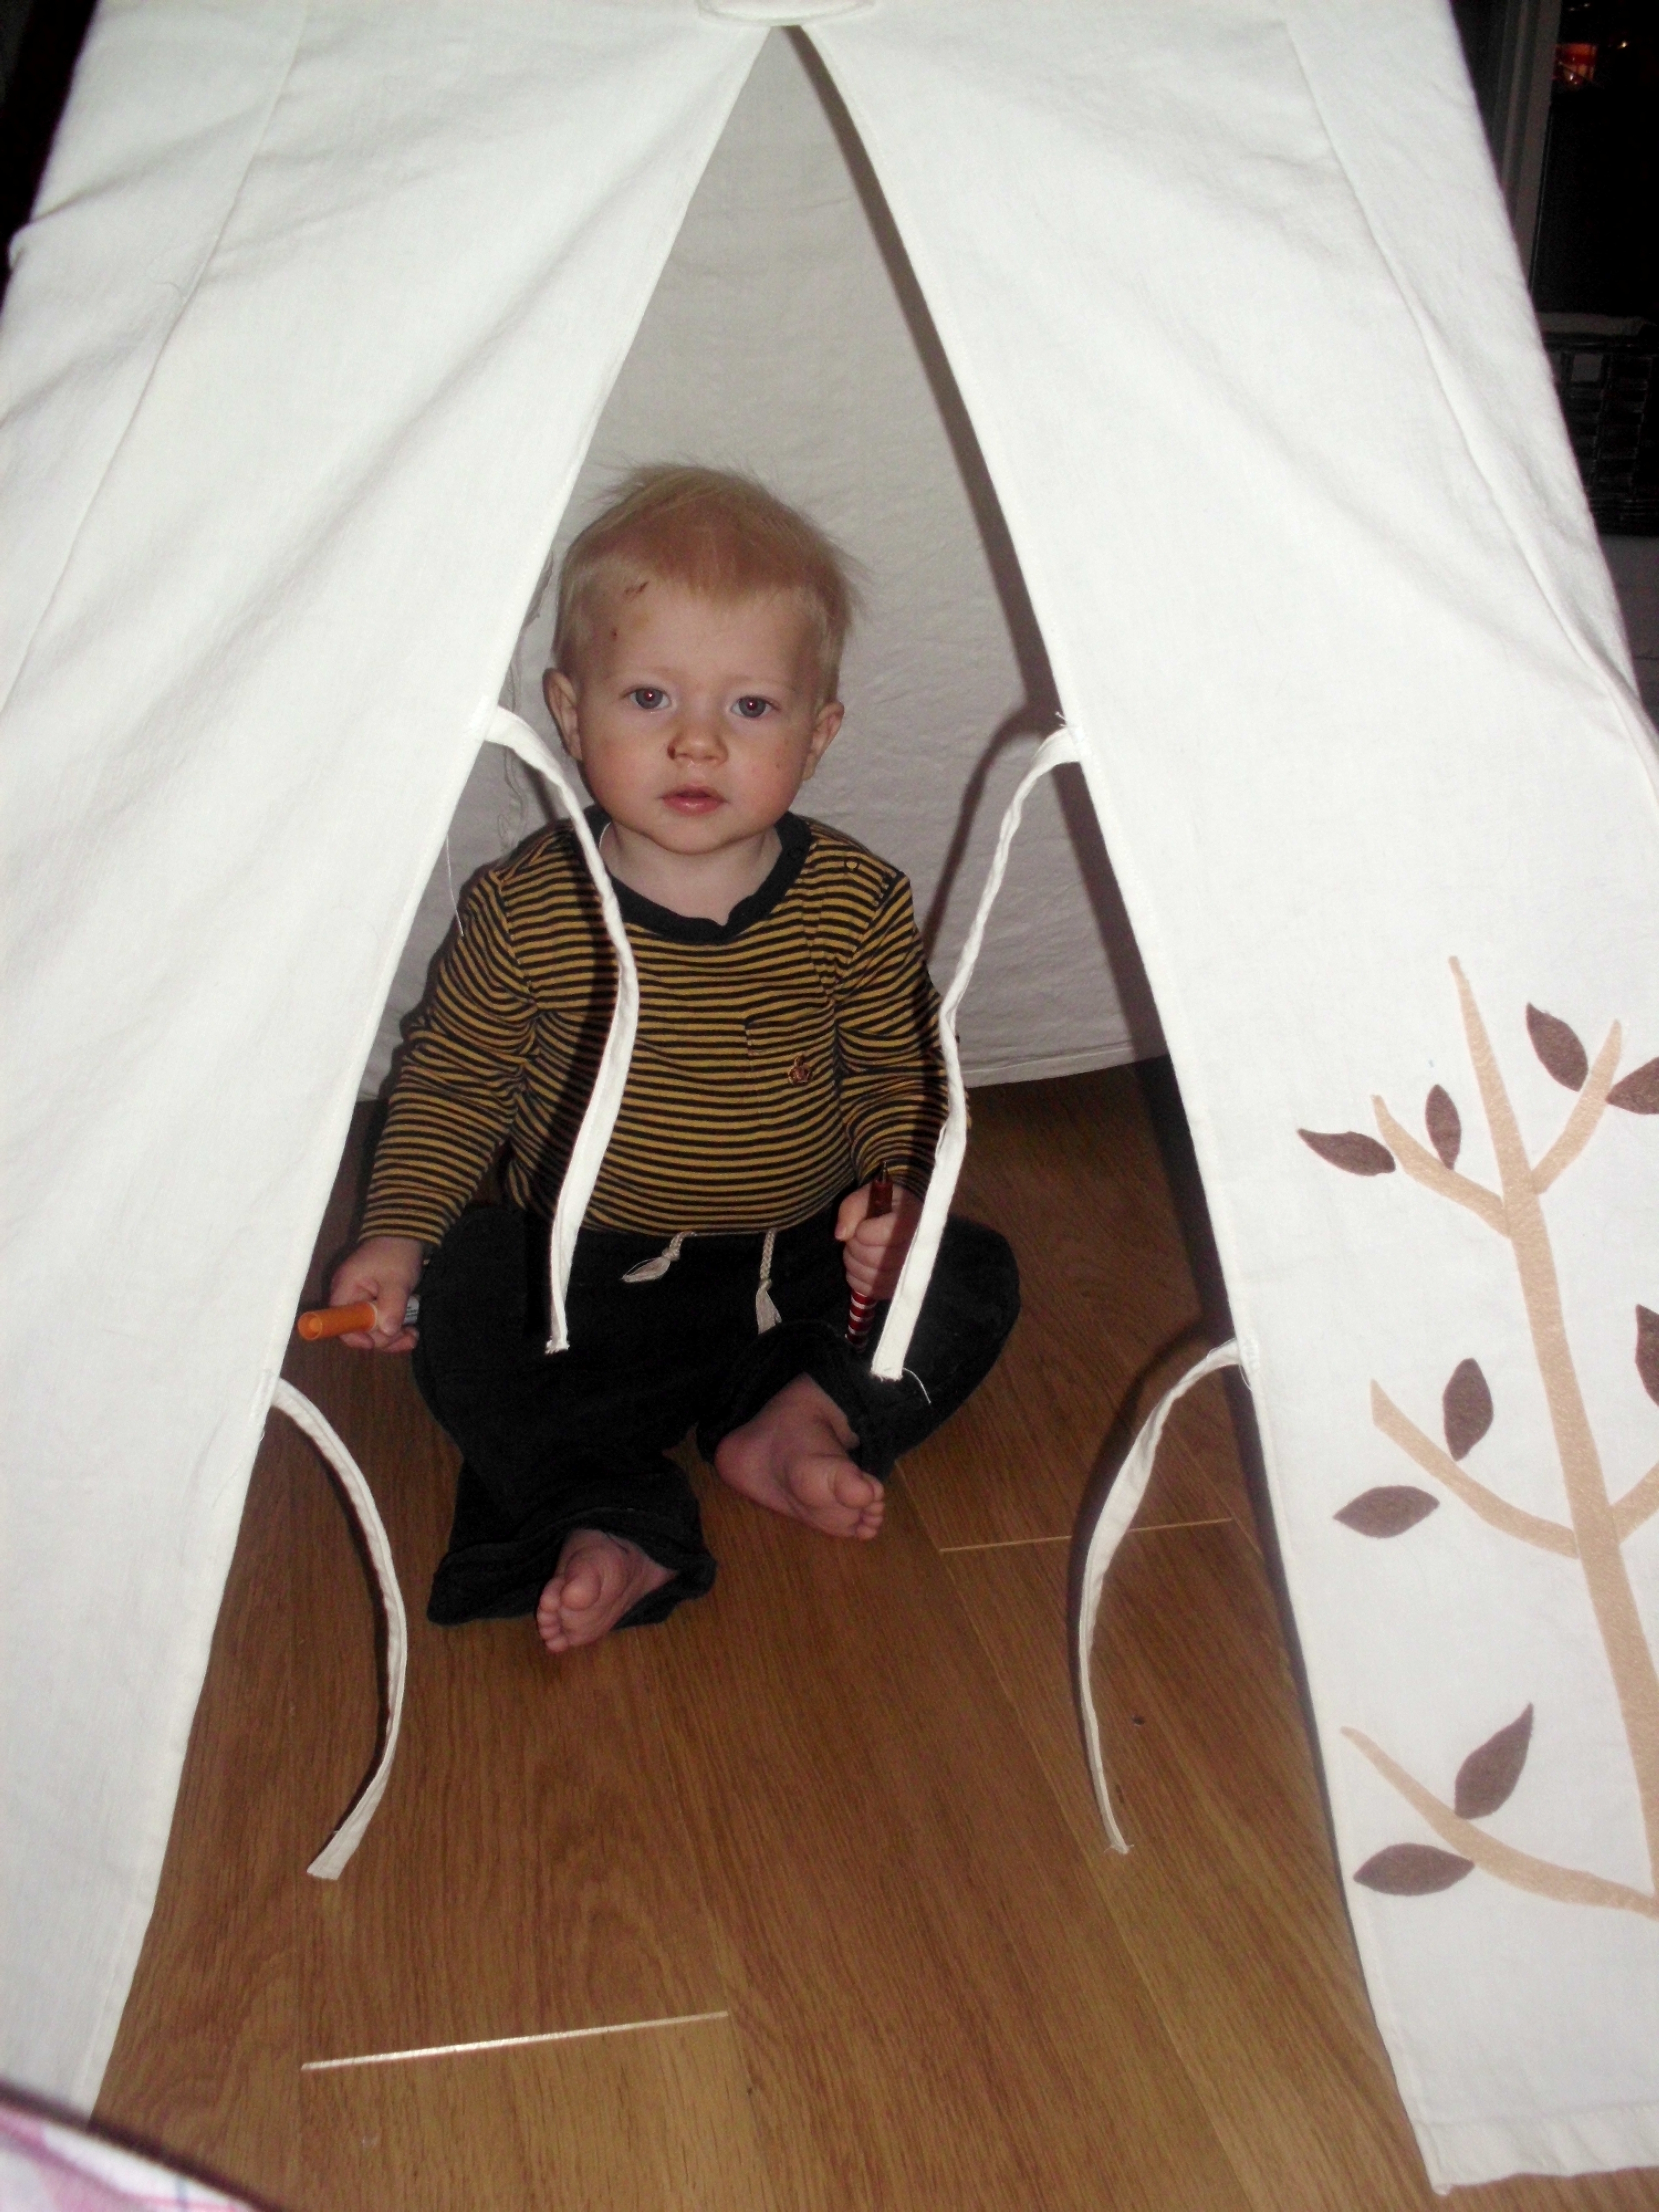 instructions for making a play teepee